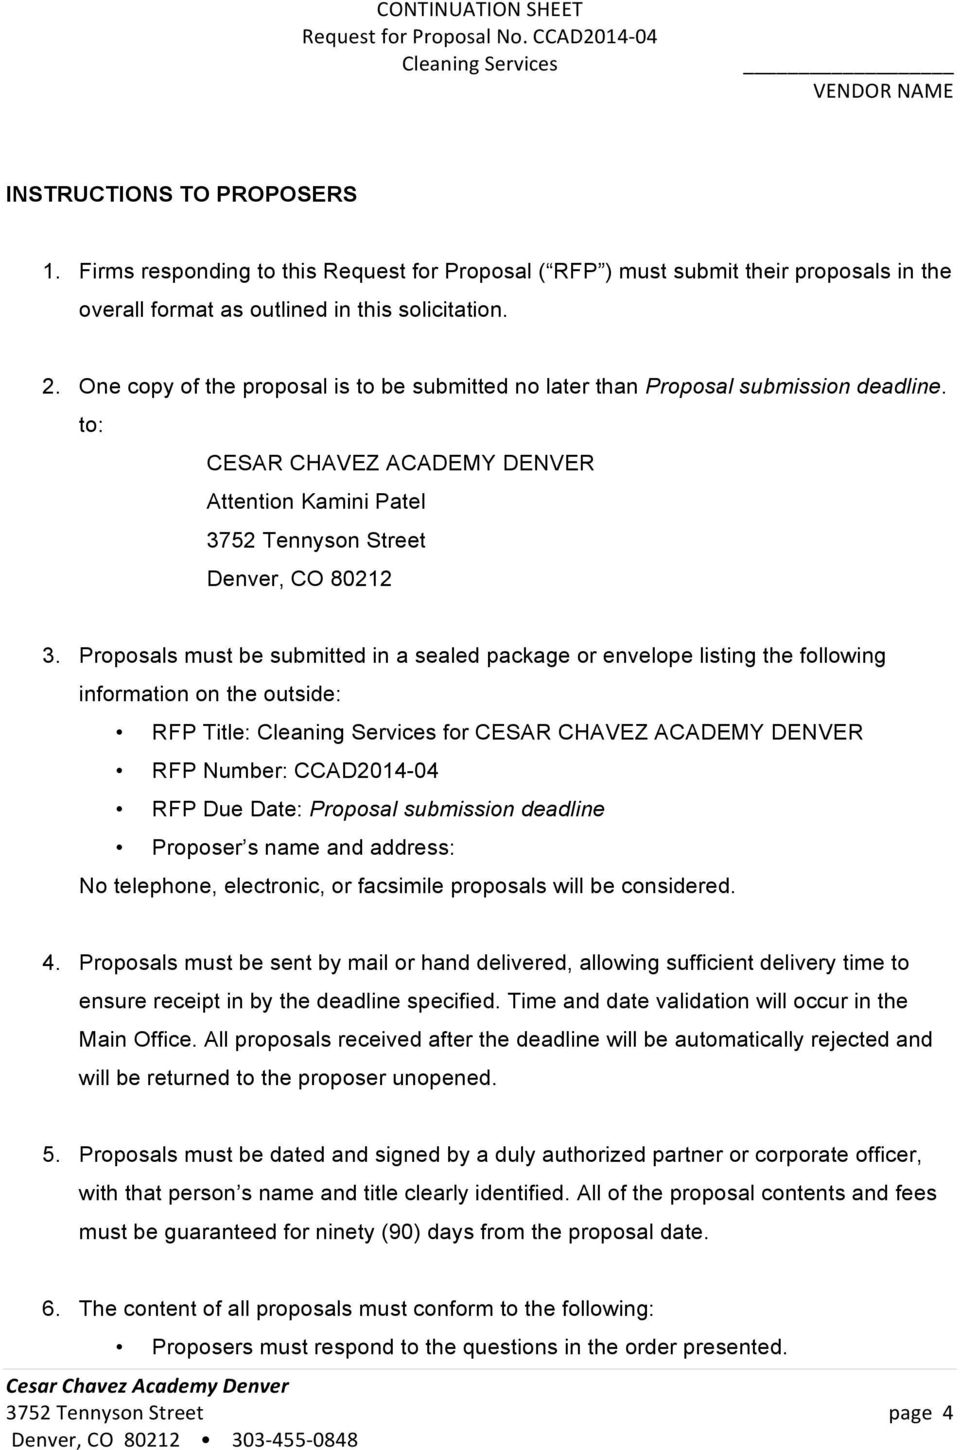 Proposals must be submitted in a sealed package or envelope listing the following information on the outside: RFP Title: Cleaning Services for CESAR CHAVEZ ACADEMY DENVER RFP Number: CCAD2014-04 RFP